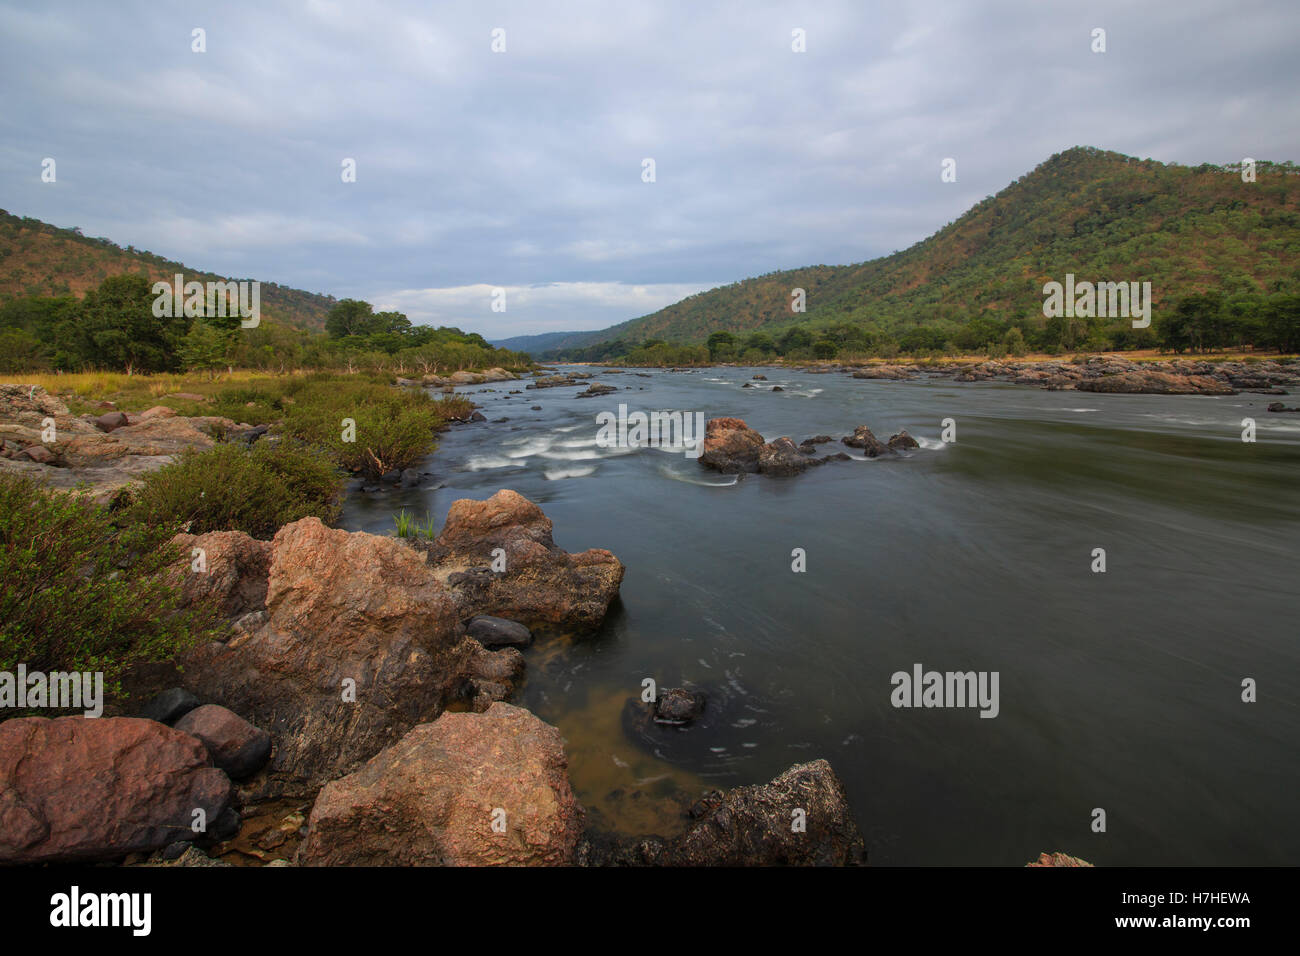 Cauvery River a Galibore (Karnataka, India) Immagini Stock